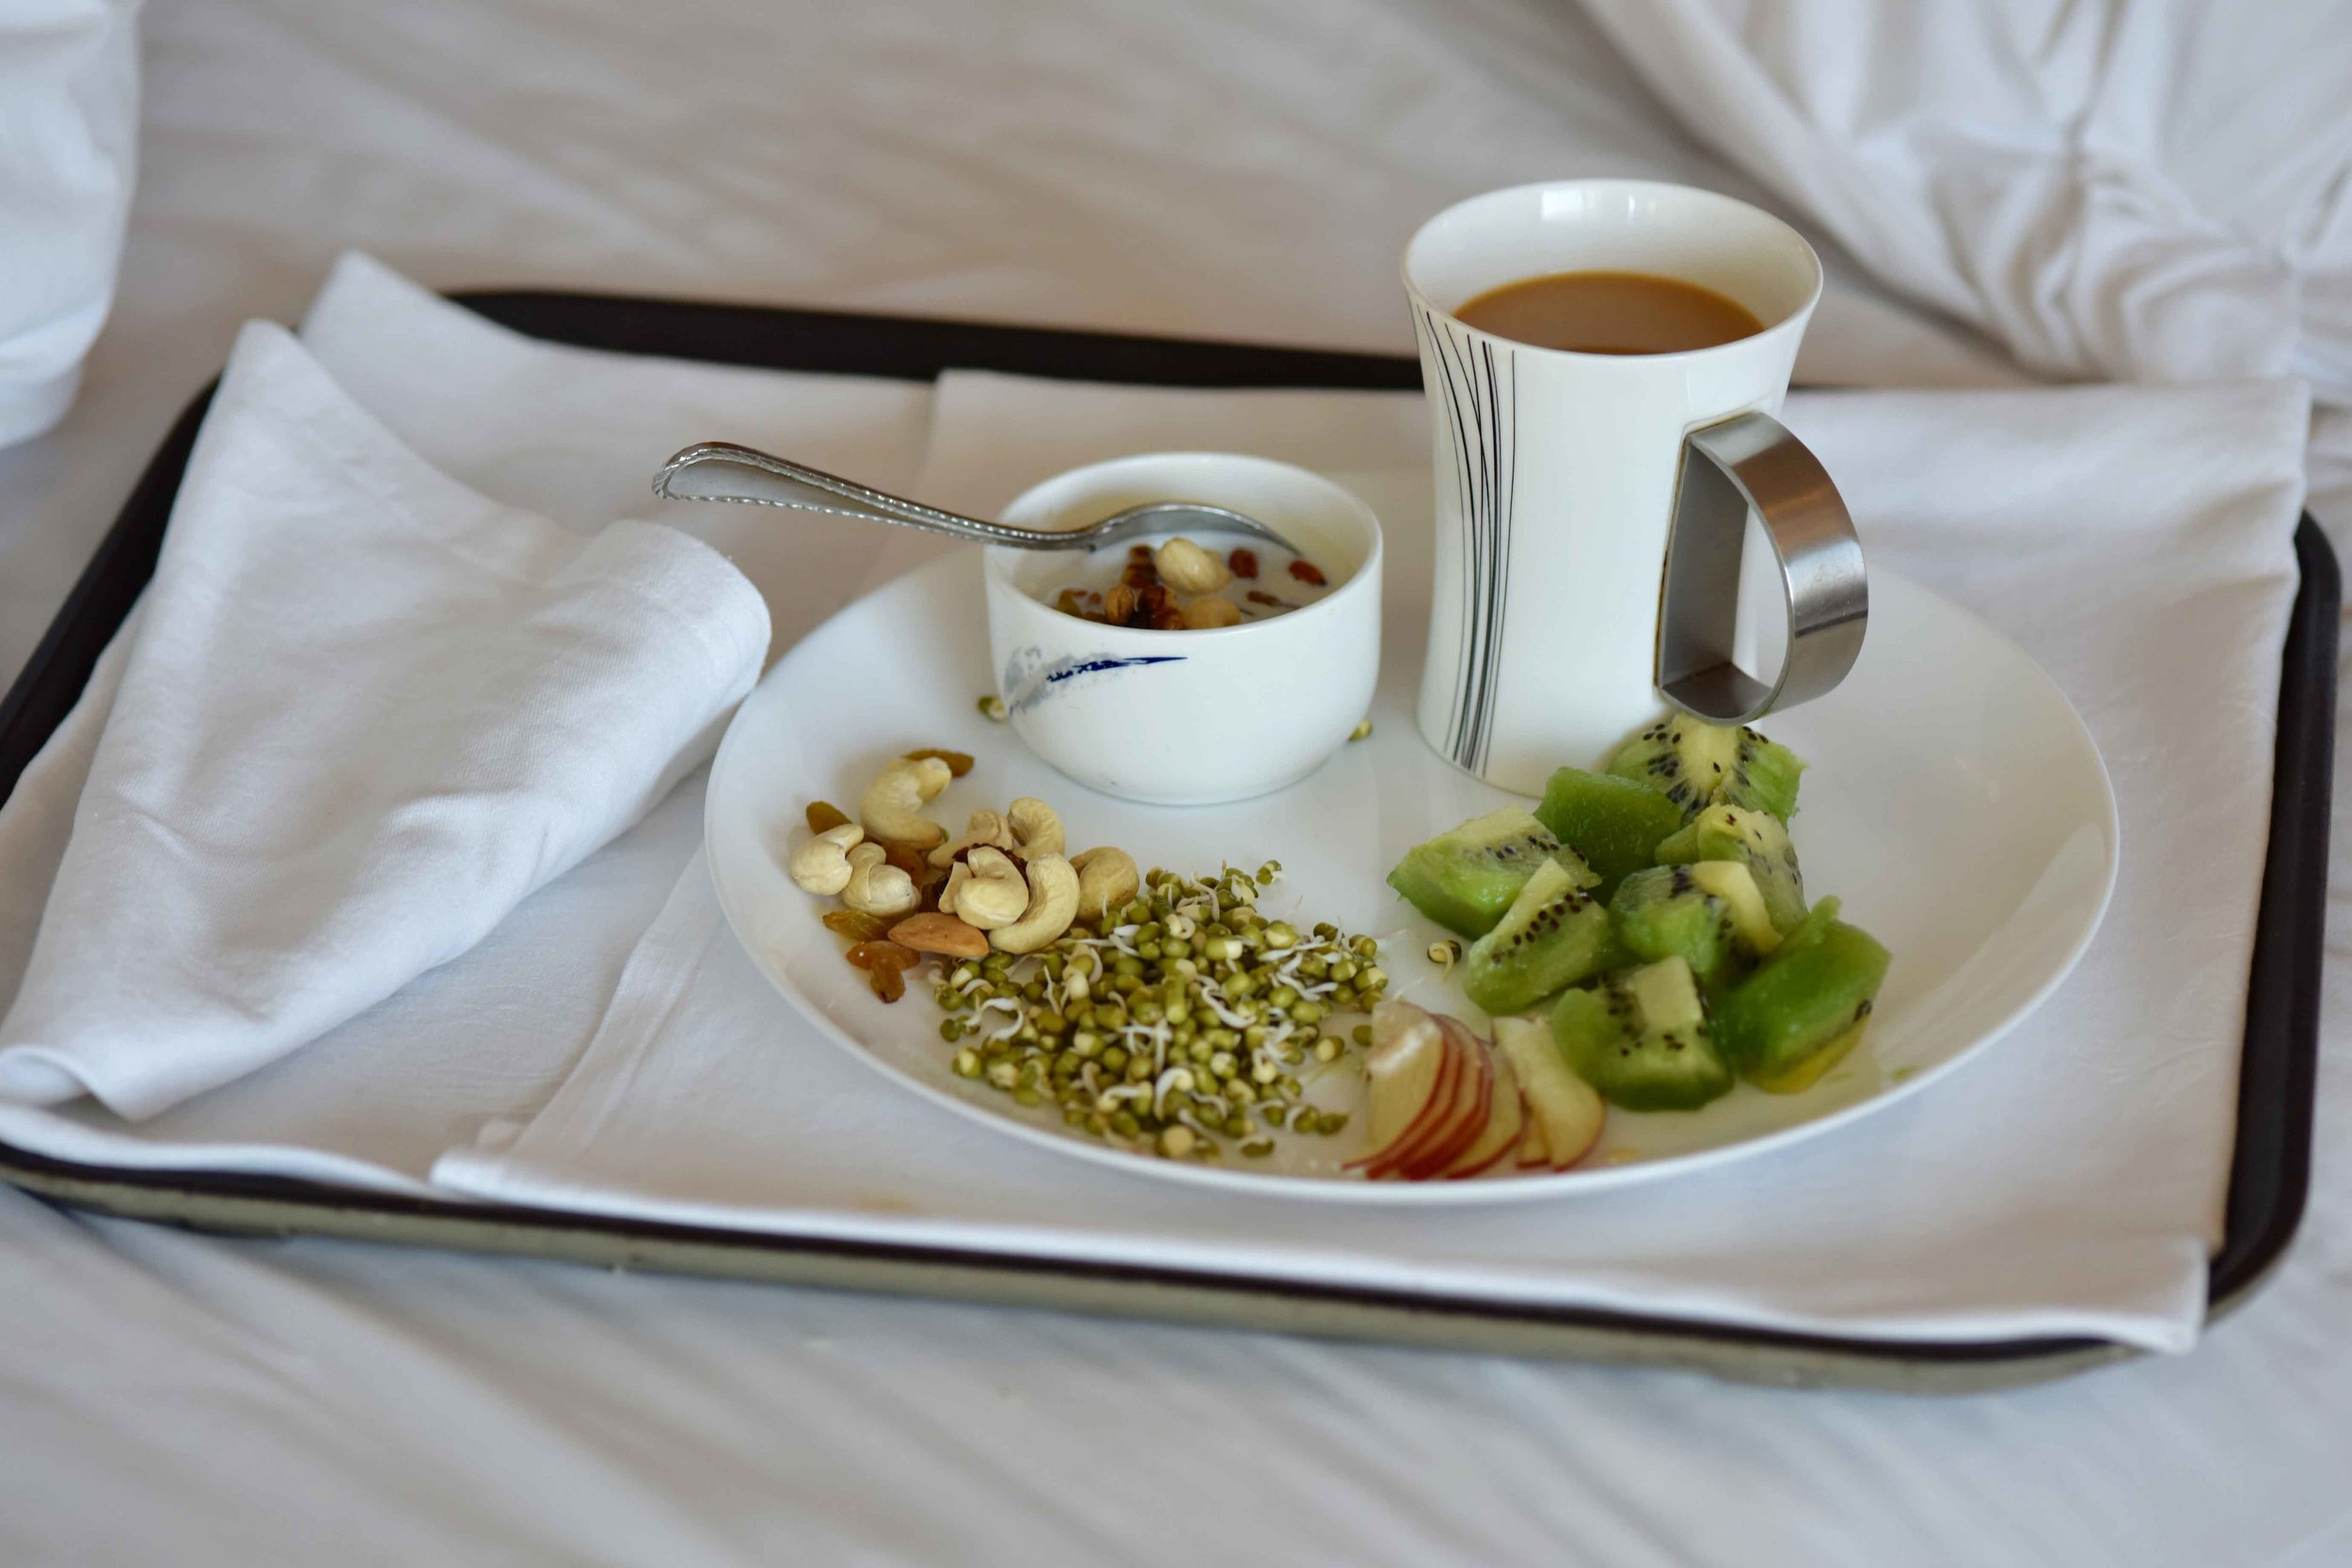 breakfast in bed, Radisson Blu Hotel, Ranchi, Jharkhand, India. Image©sourcingstyle.com.